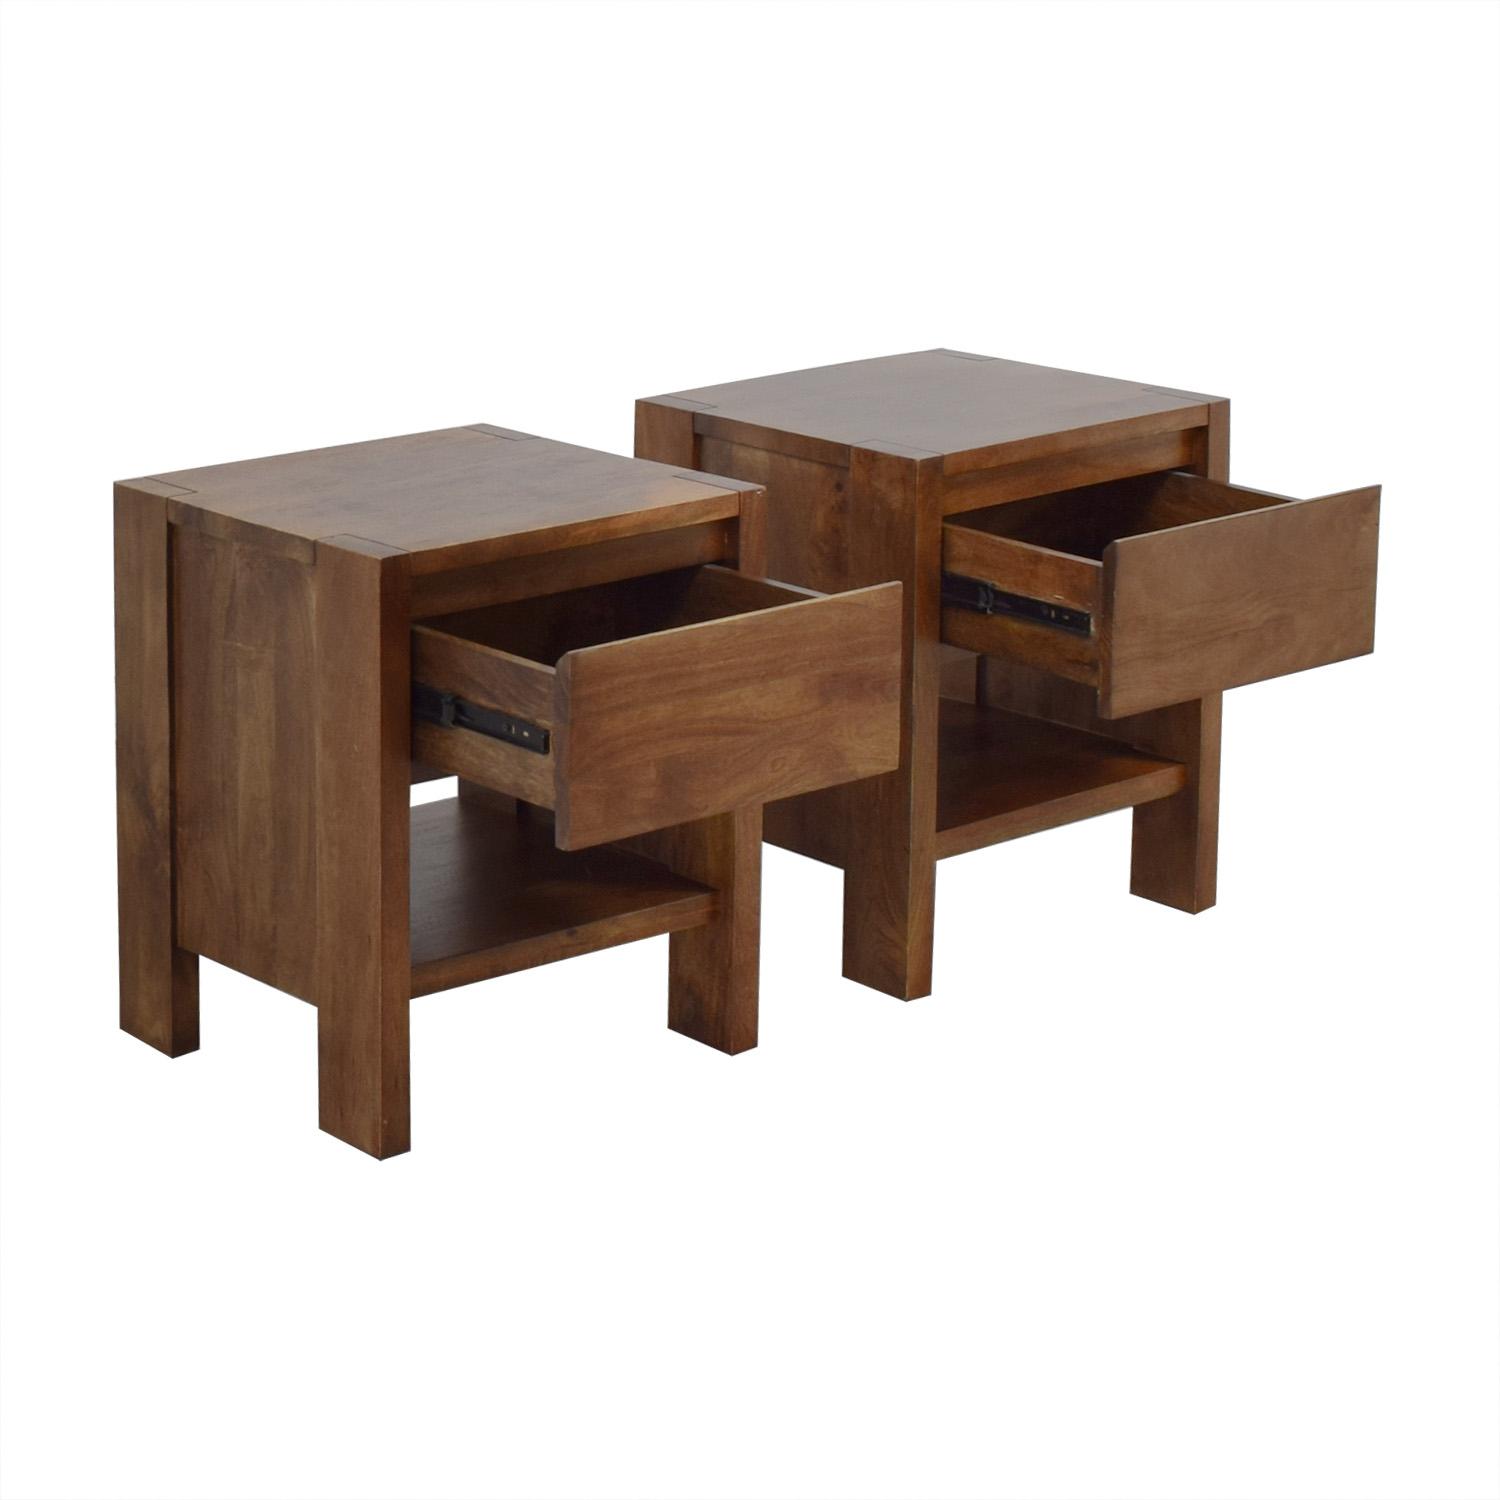 Crate & Barrel Nightstands / Tables